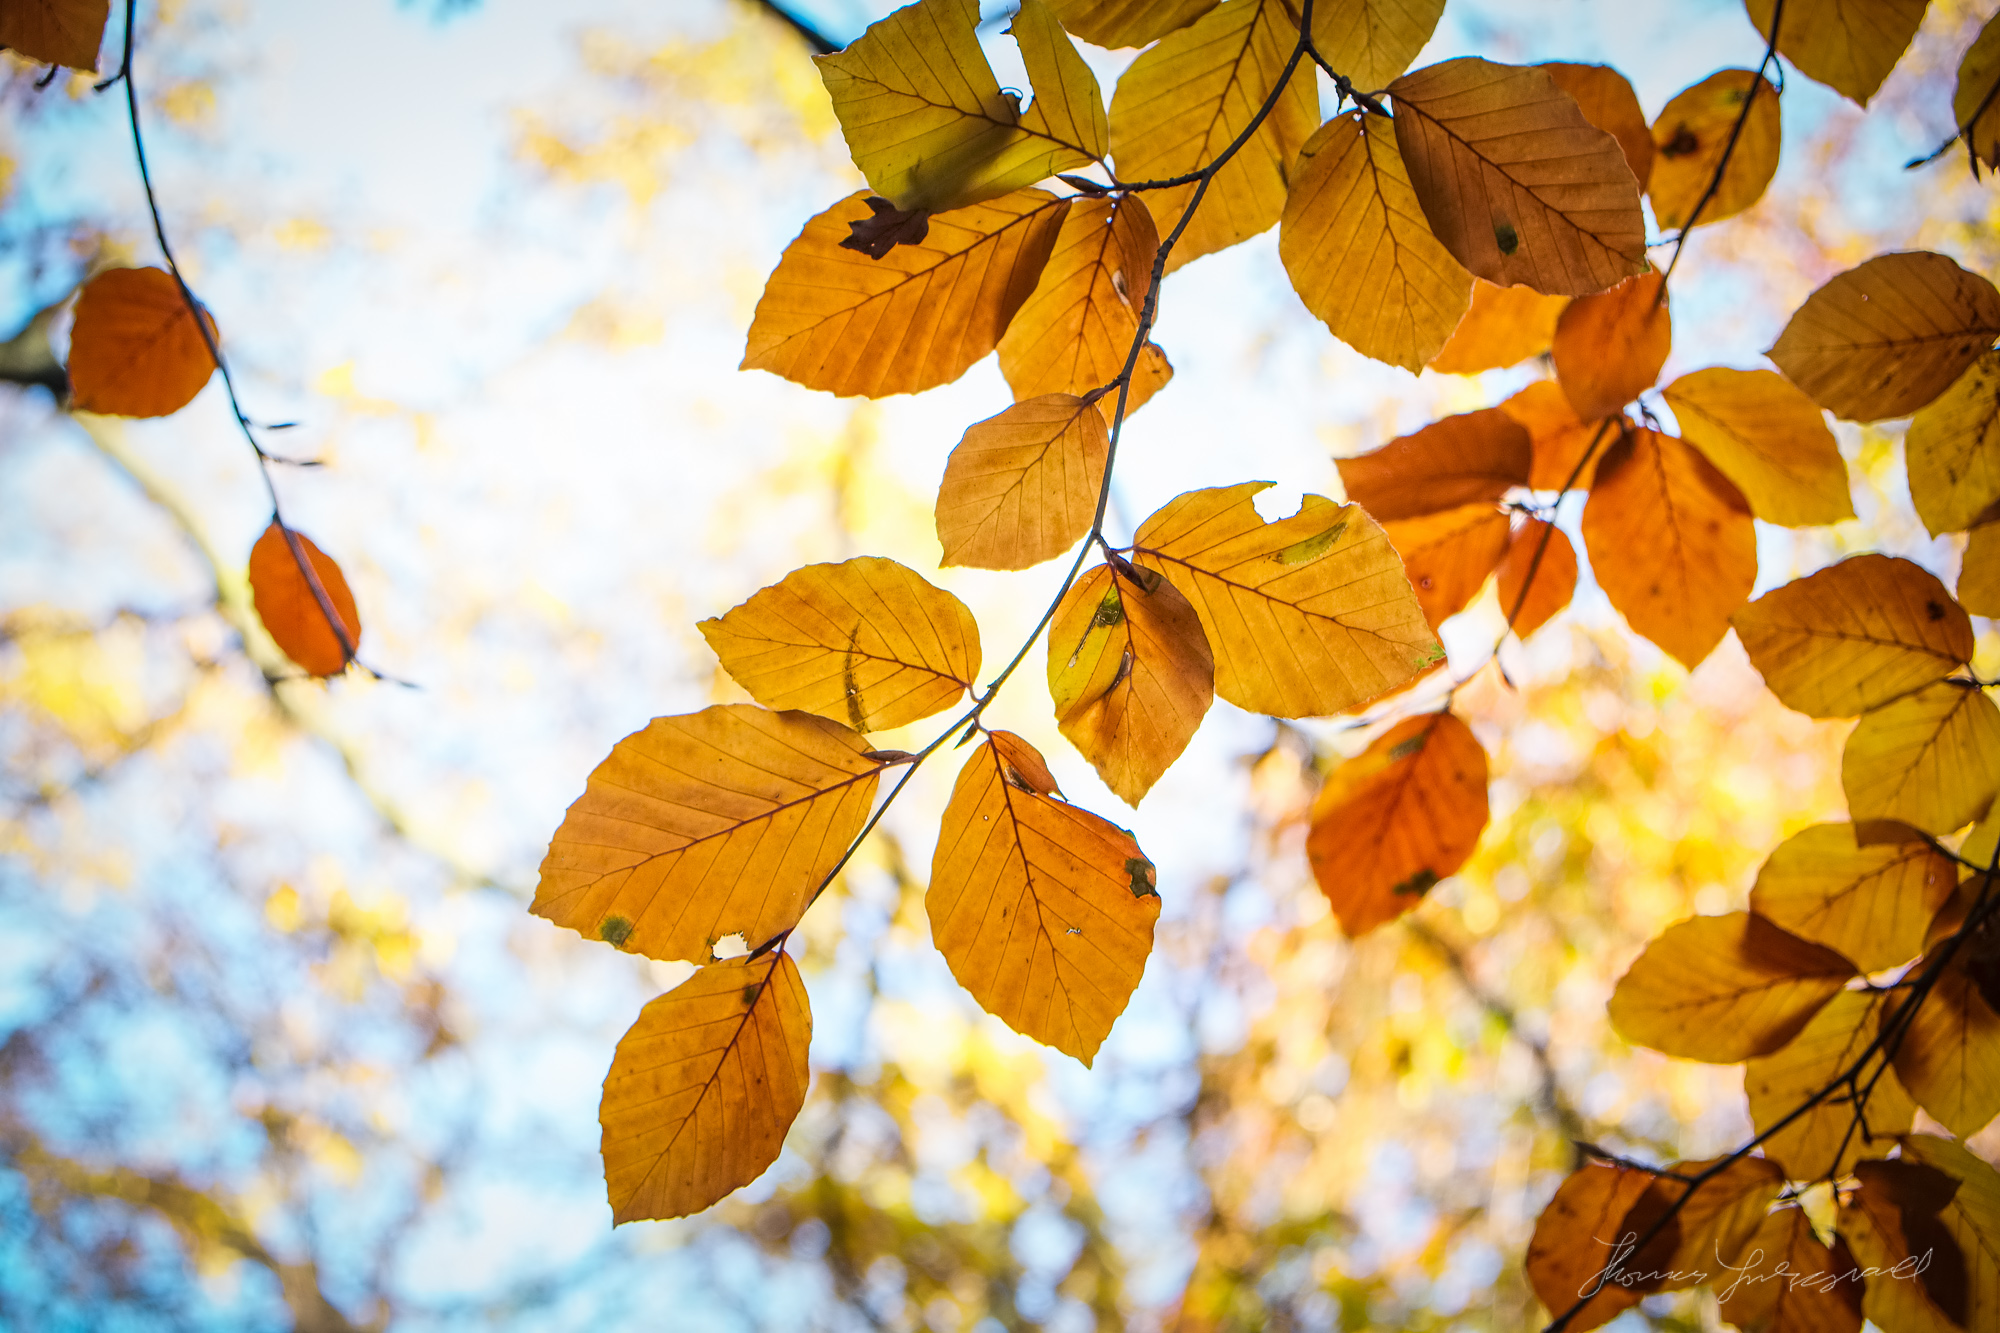 Brown leaves and a Golden Sky - Taken with a Fuji XE1